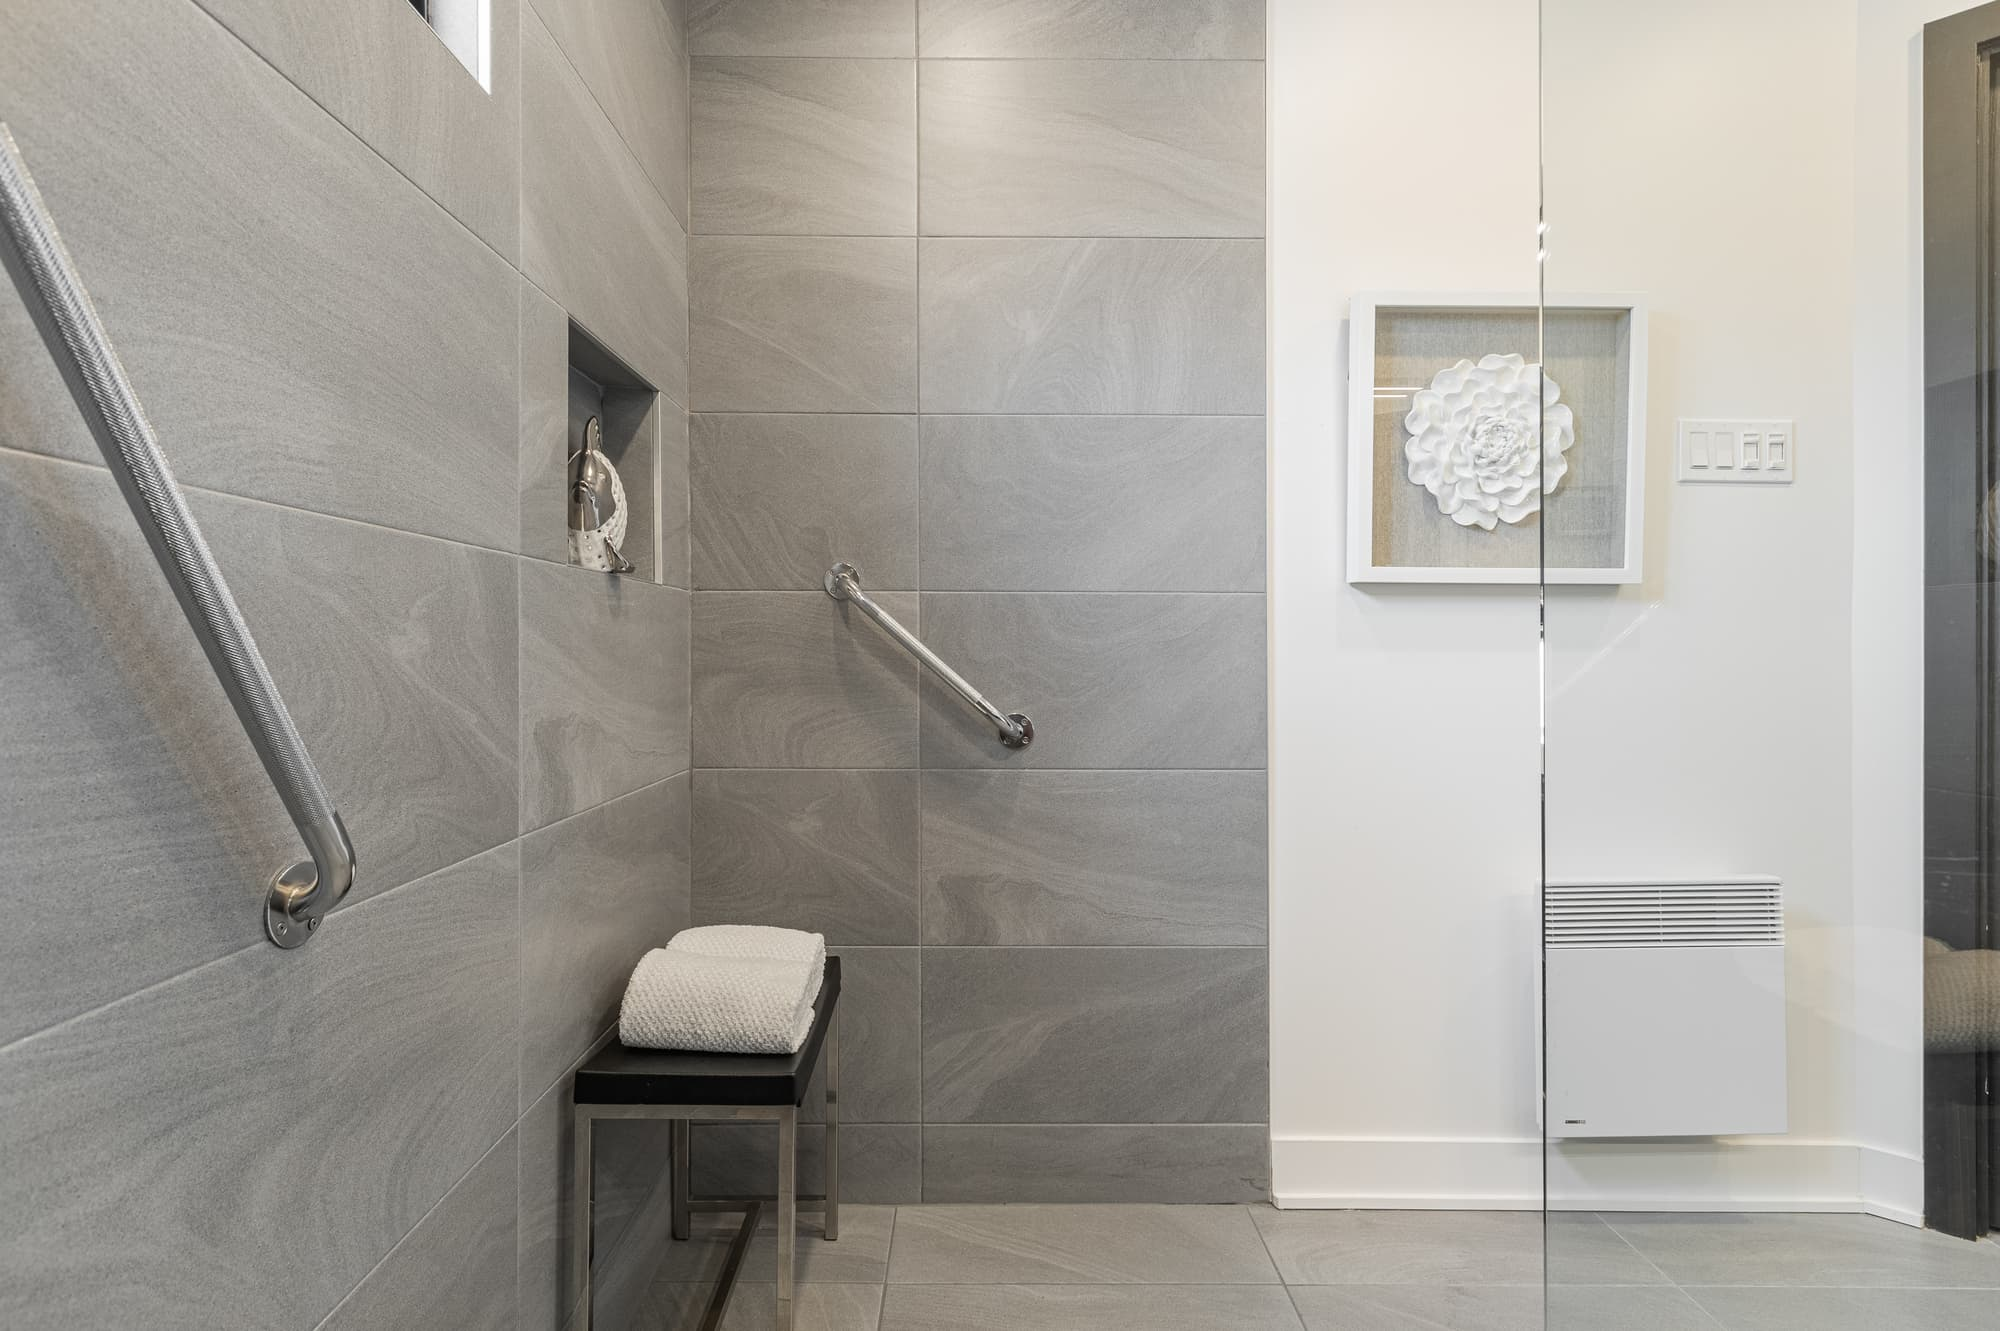 walk-in shower with handrails and grey tiles